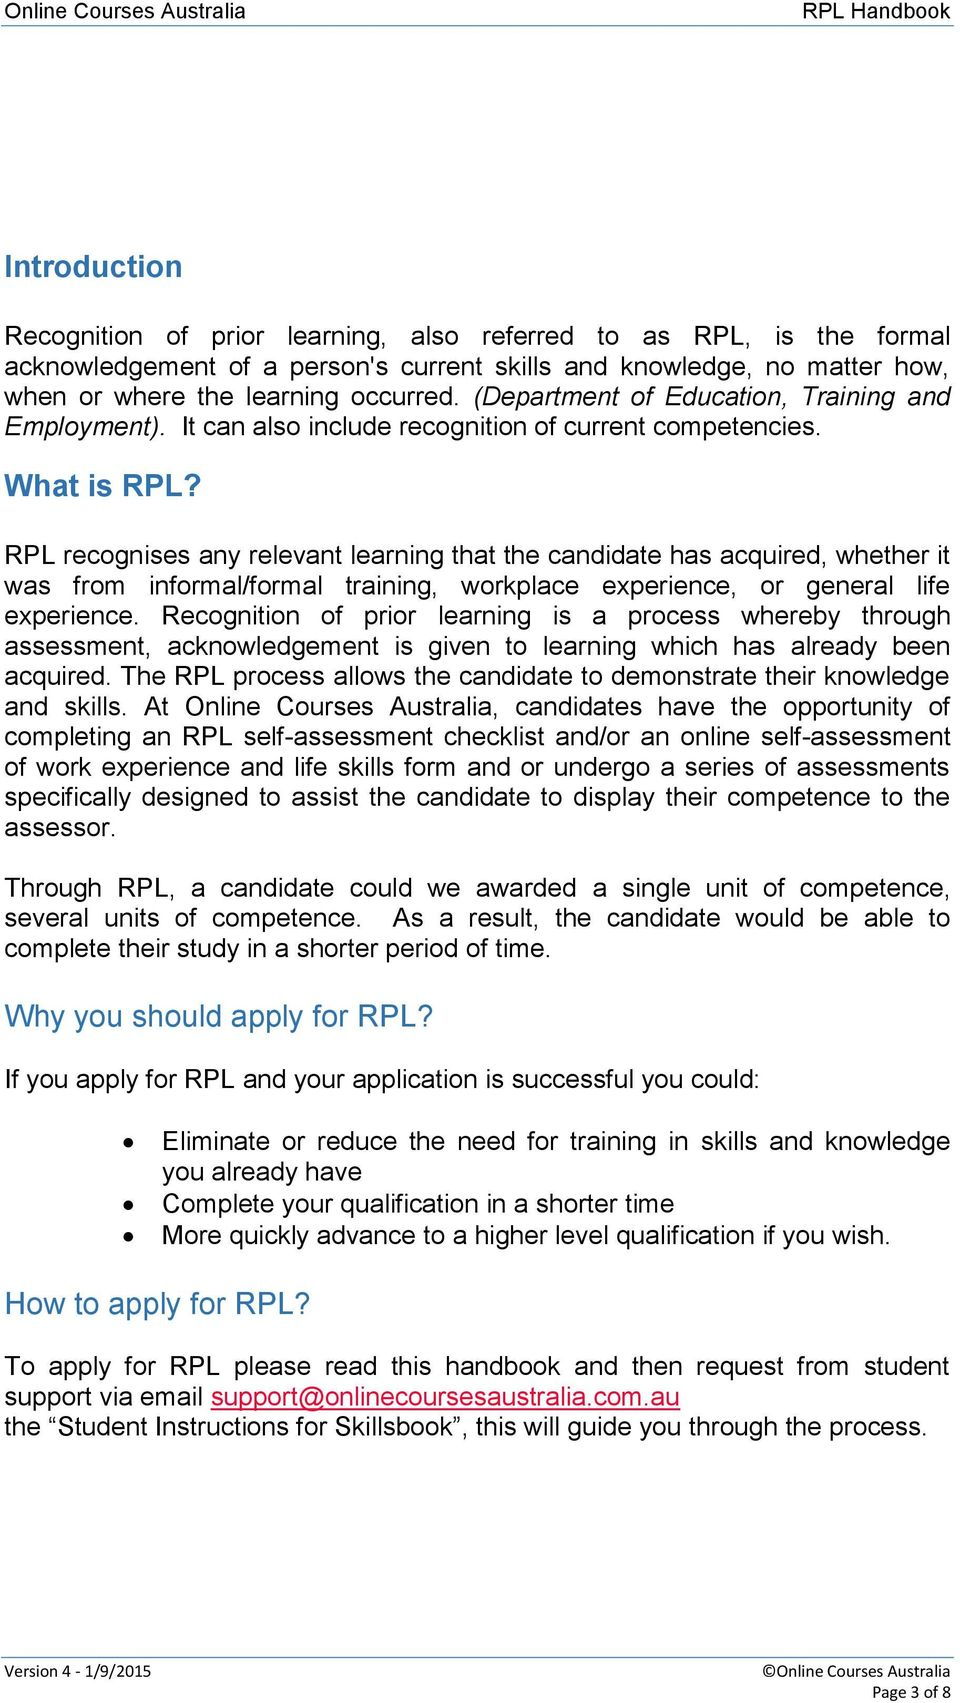 RPL recognises any relevant learning that the candidate has acquired, whether it was from informal/formal training, workplace experience, or general life experience.